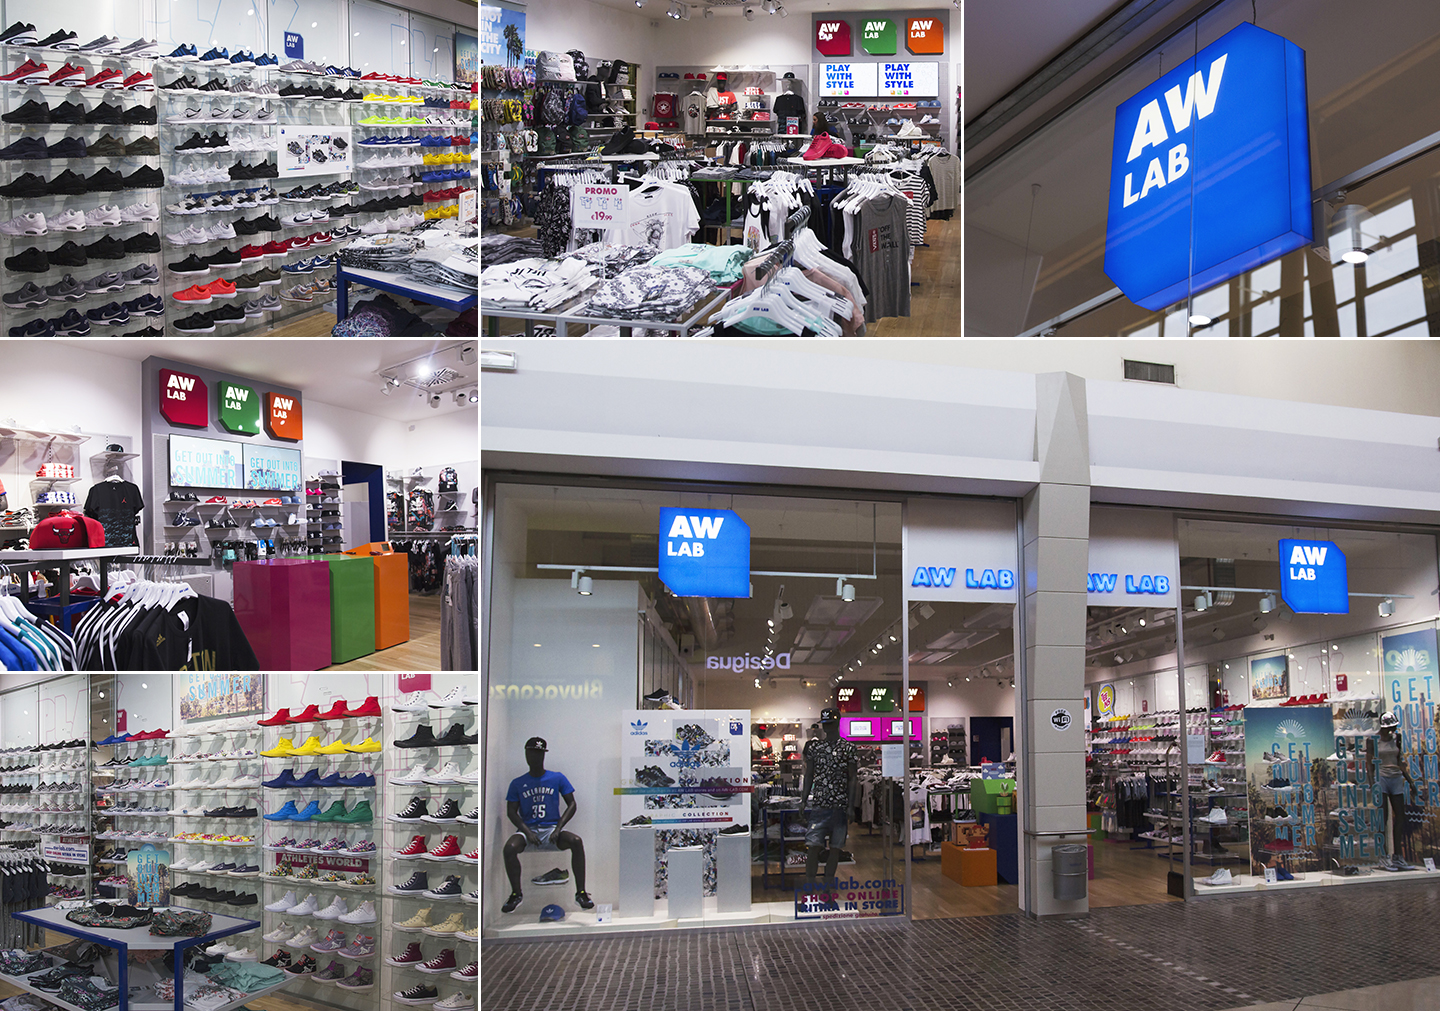 AW LAB | Centro Carrefour Limbiate